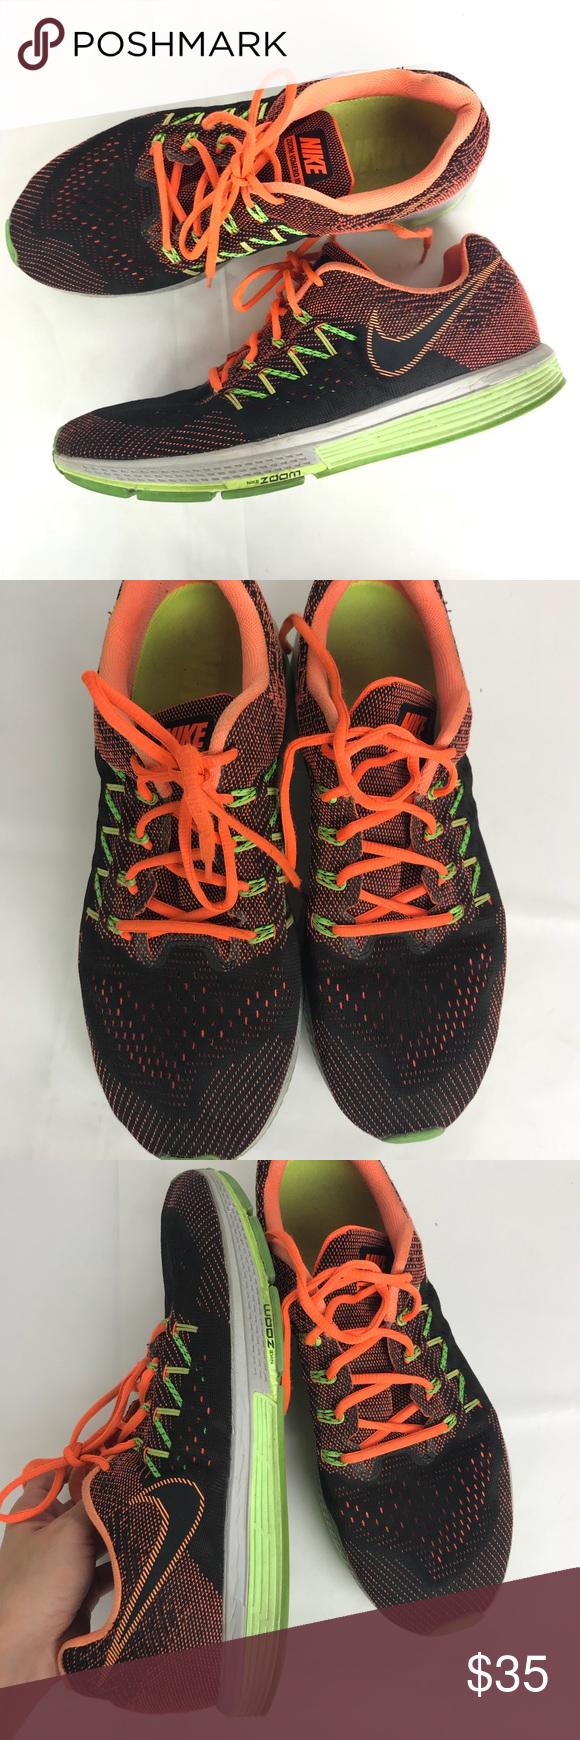 Nike Air Zoom Vomero 10 717440-803 Shoes Men s 12 In great used condition  Normal signs of wear Nike Shoes Athletic Shoes 42c0496fc